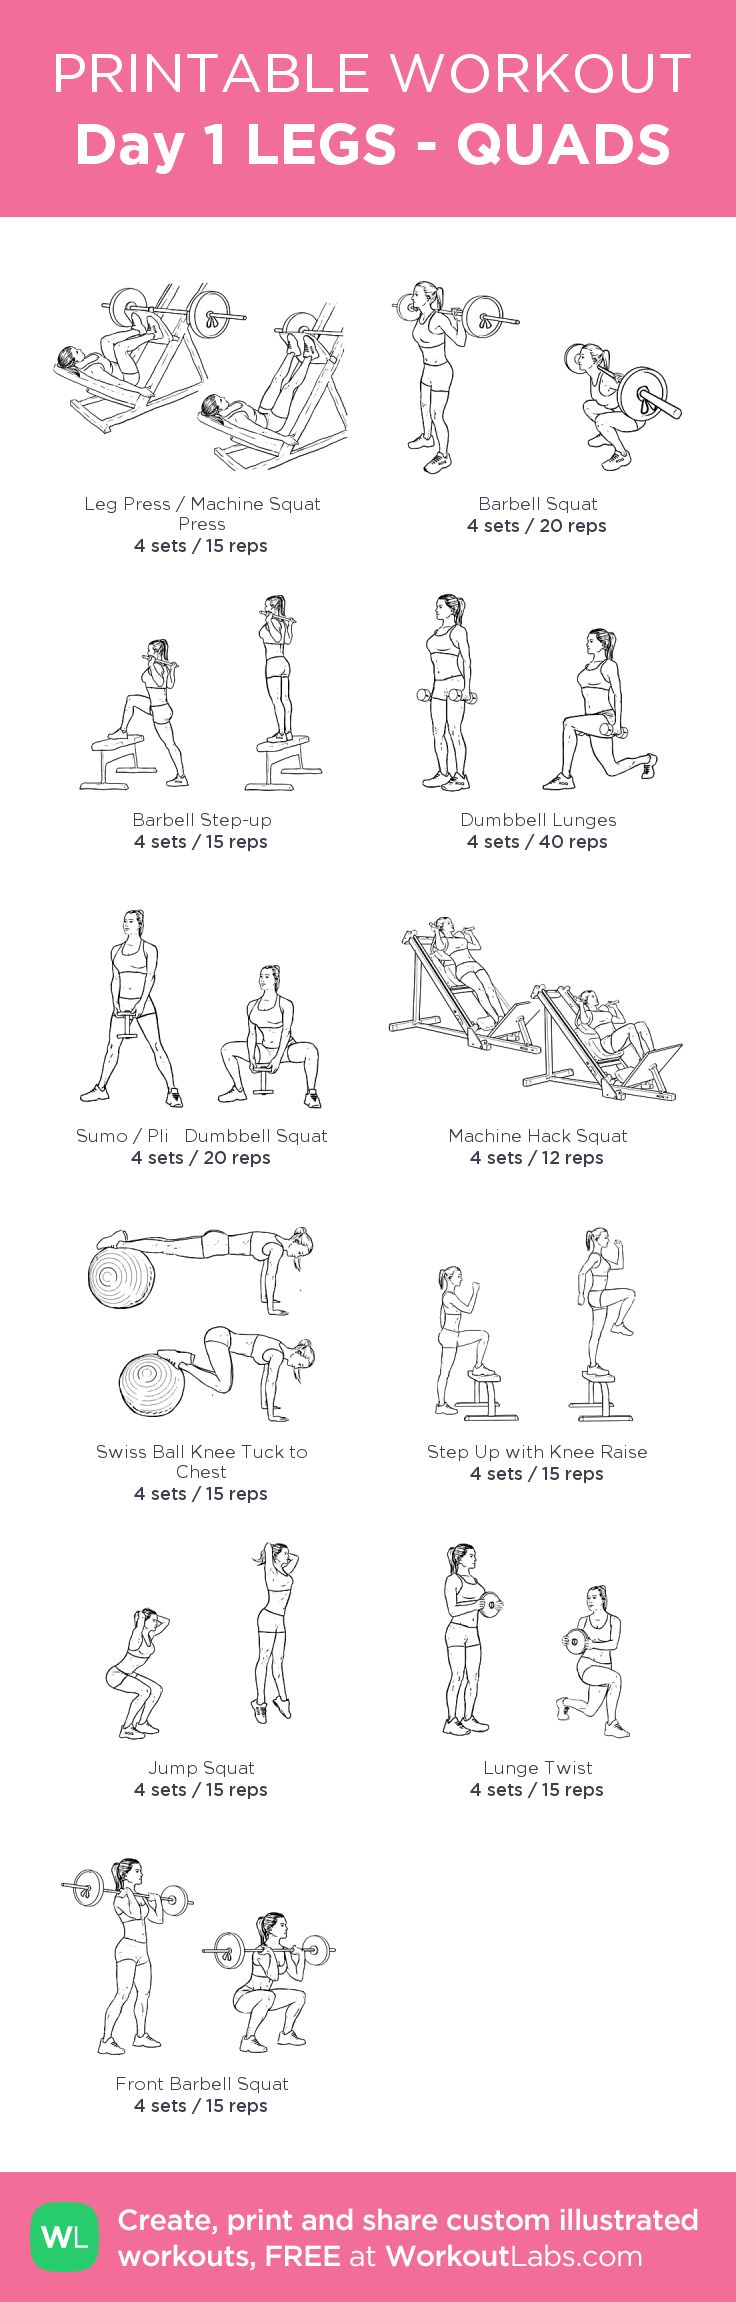 Day 1 LEGS - QUADS : my visual workout created at WorkoutLabs.com • Click through to customize and download as a FREE PDF! #customworkout